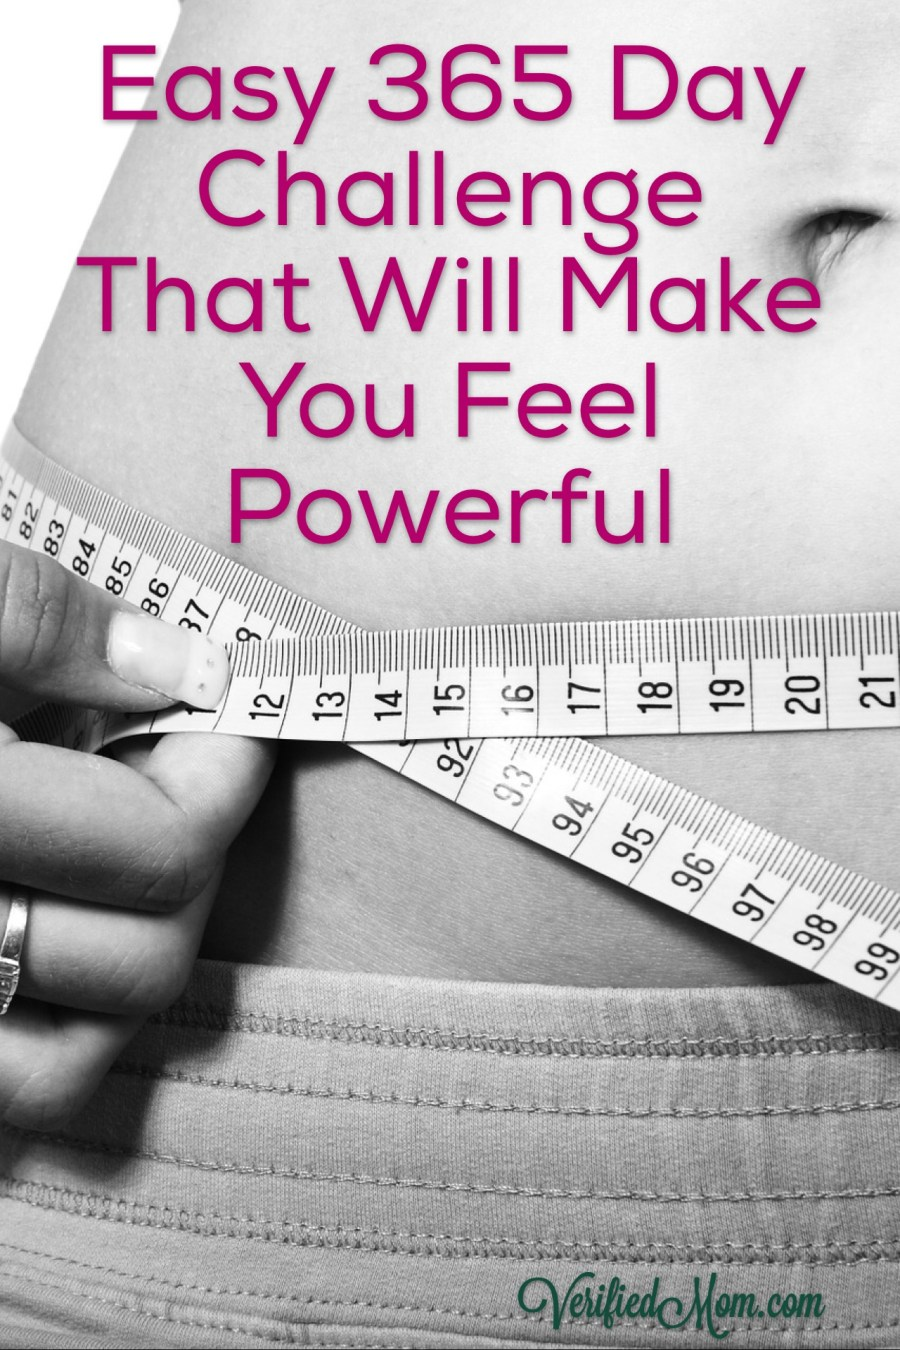 Easy 365 Day Challenge That Will Make You Feel Powerful -Pin